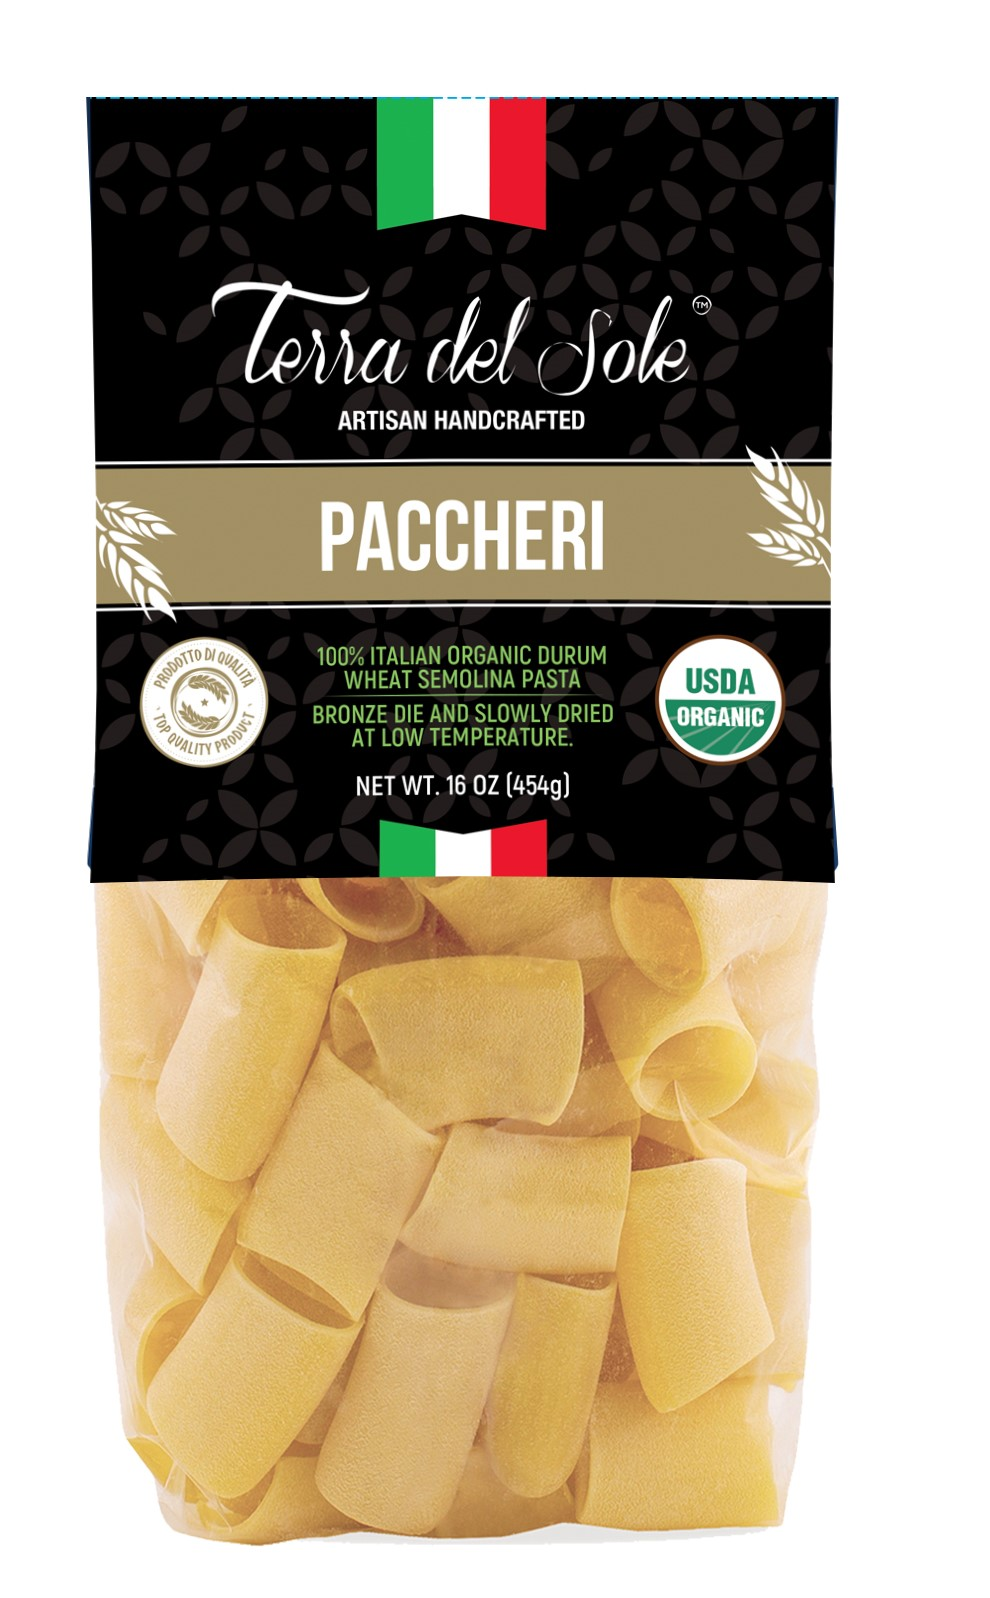 "Pasta Terra del Sole""PACCHERI"" 16oz, bronze die - ORGANIC, Imported from Italy"